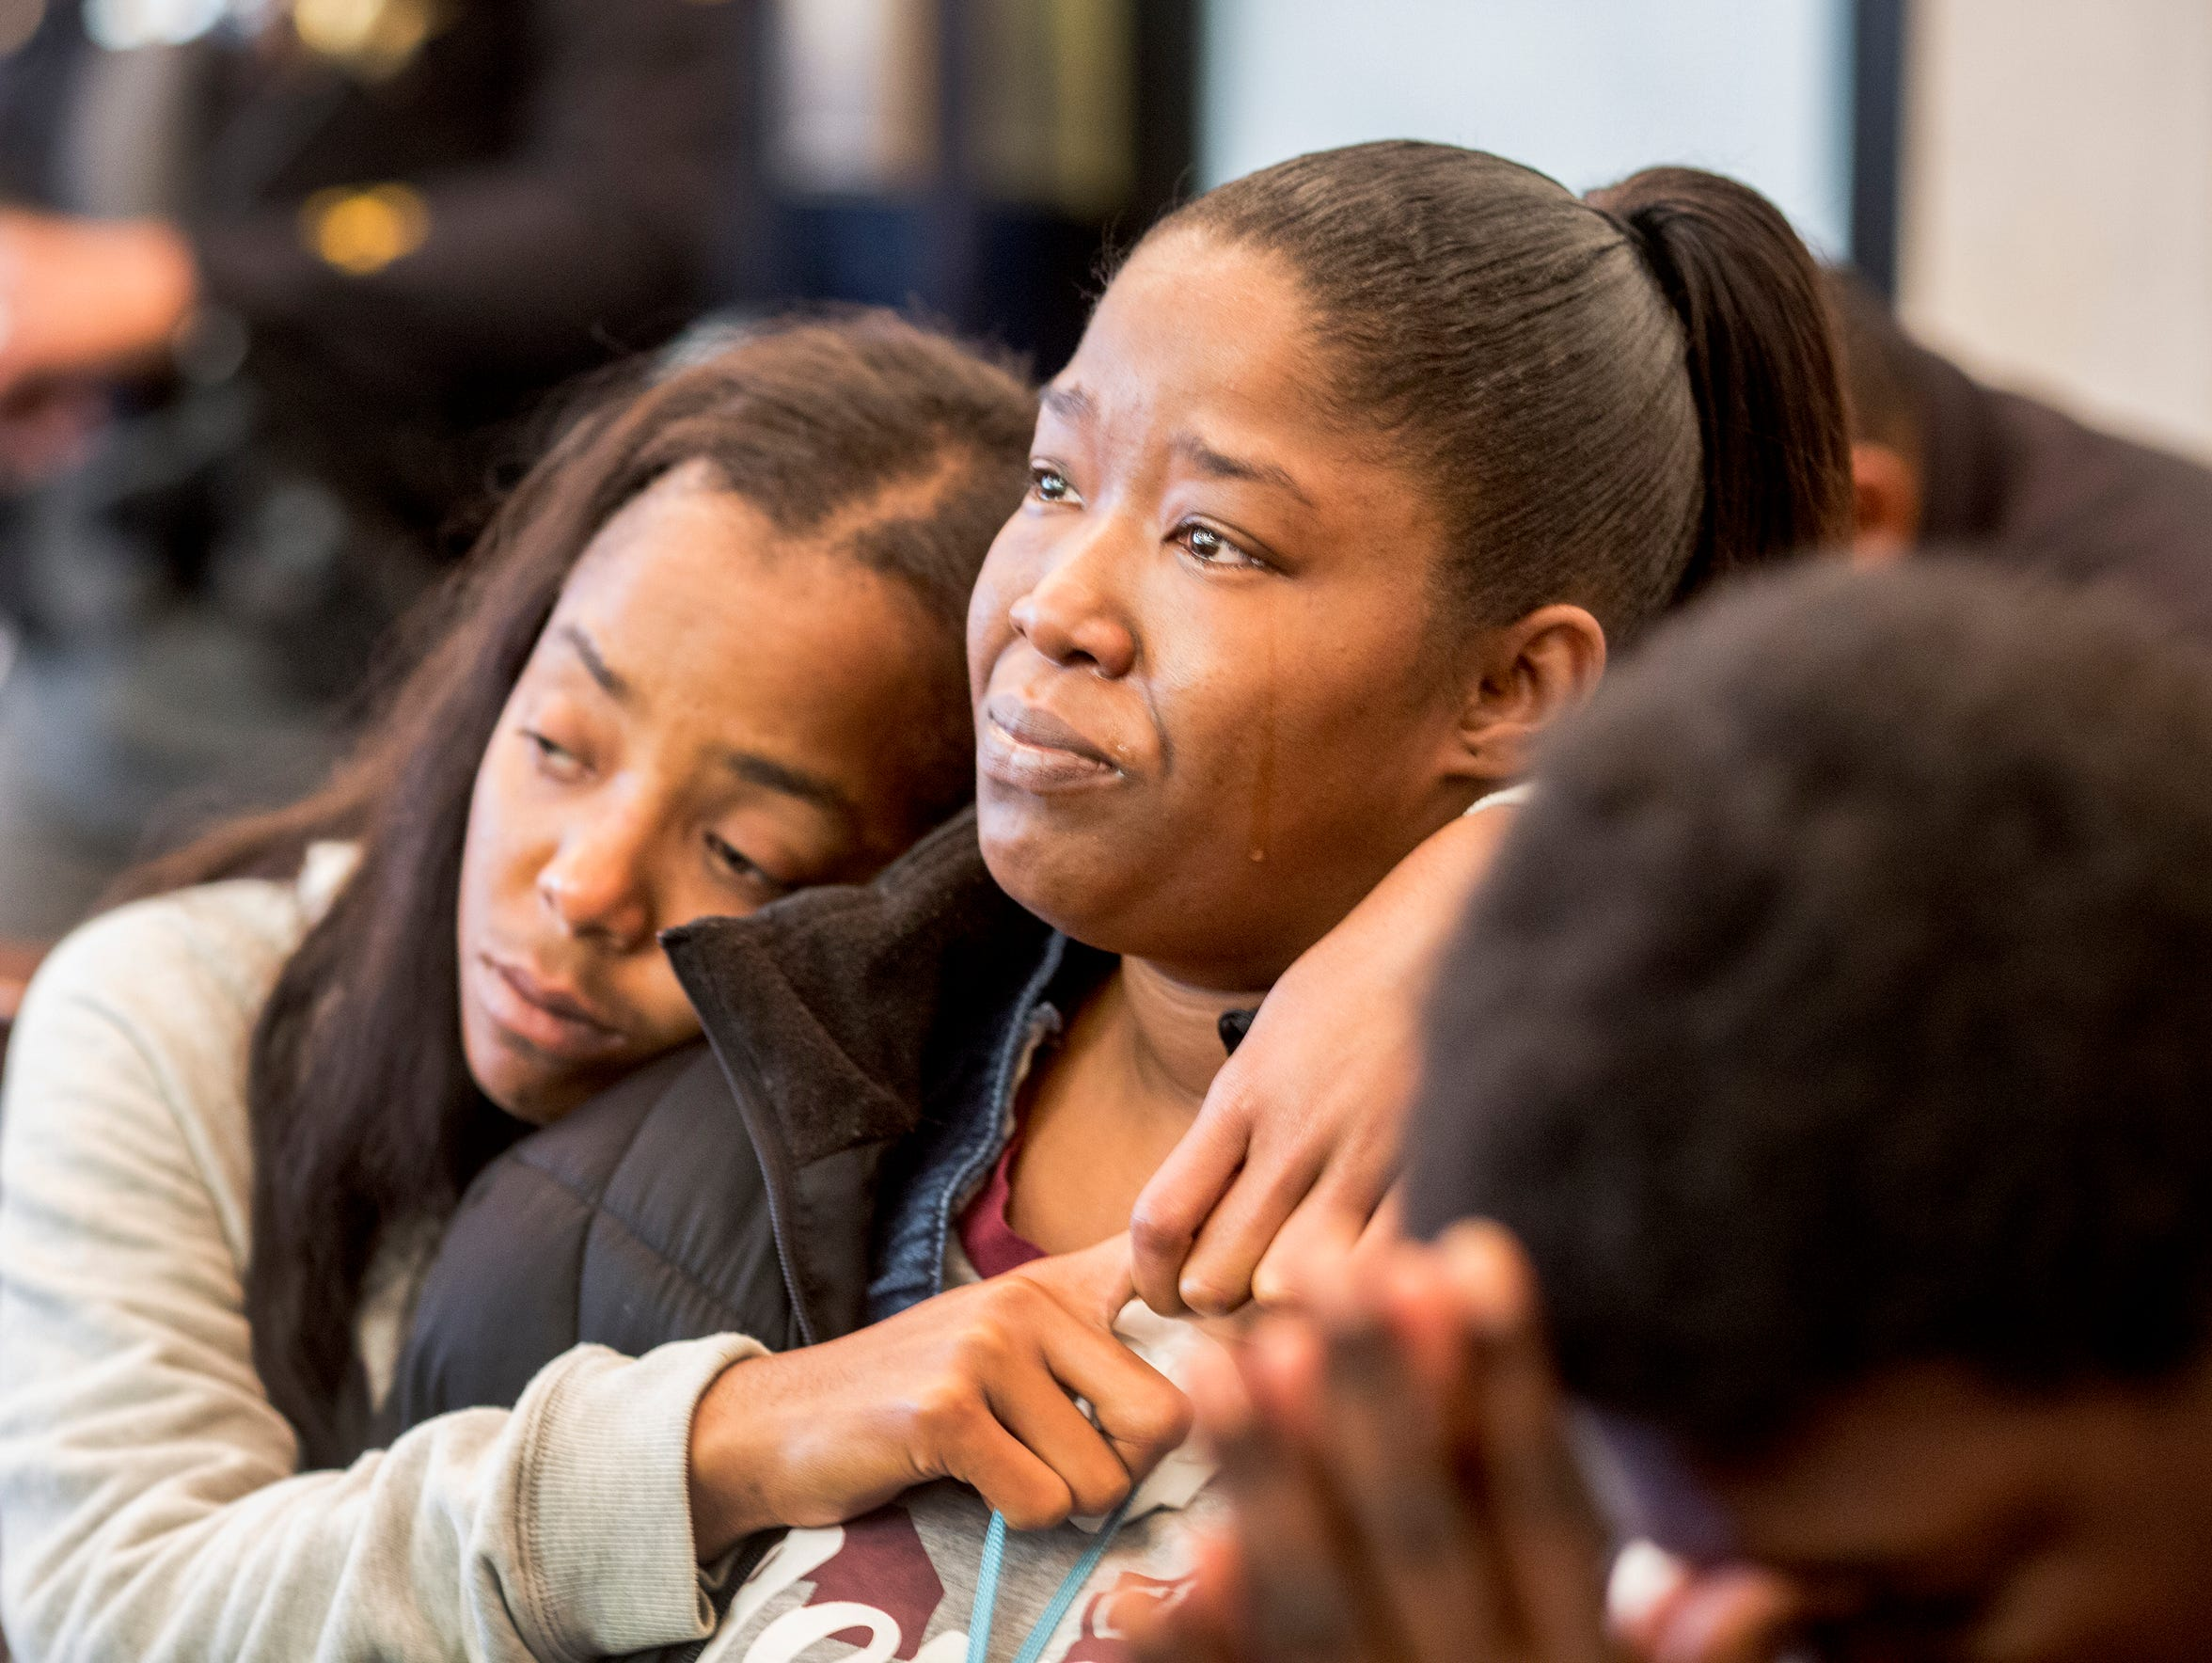 Malyyka Bonner, right, and her cousin Sadareh Pettis, listen as Bonner's son, Javon Coulter, 16, takes a plea agreement for the shooting death of Suliman Ahmed Abdul-Mutakallim, 39.